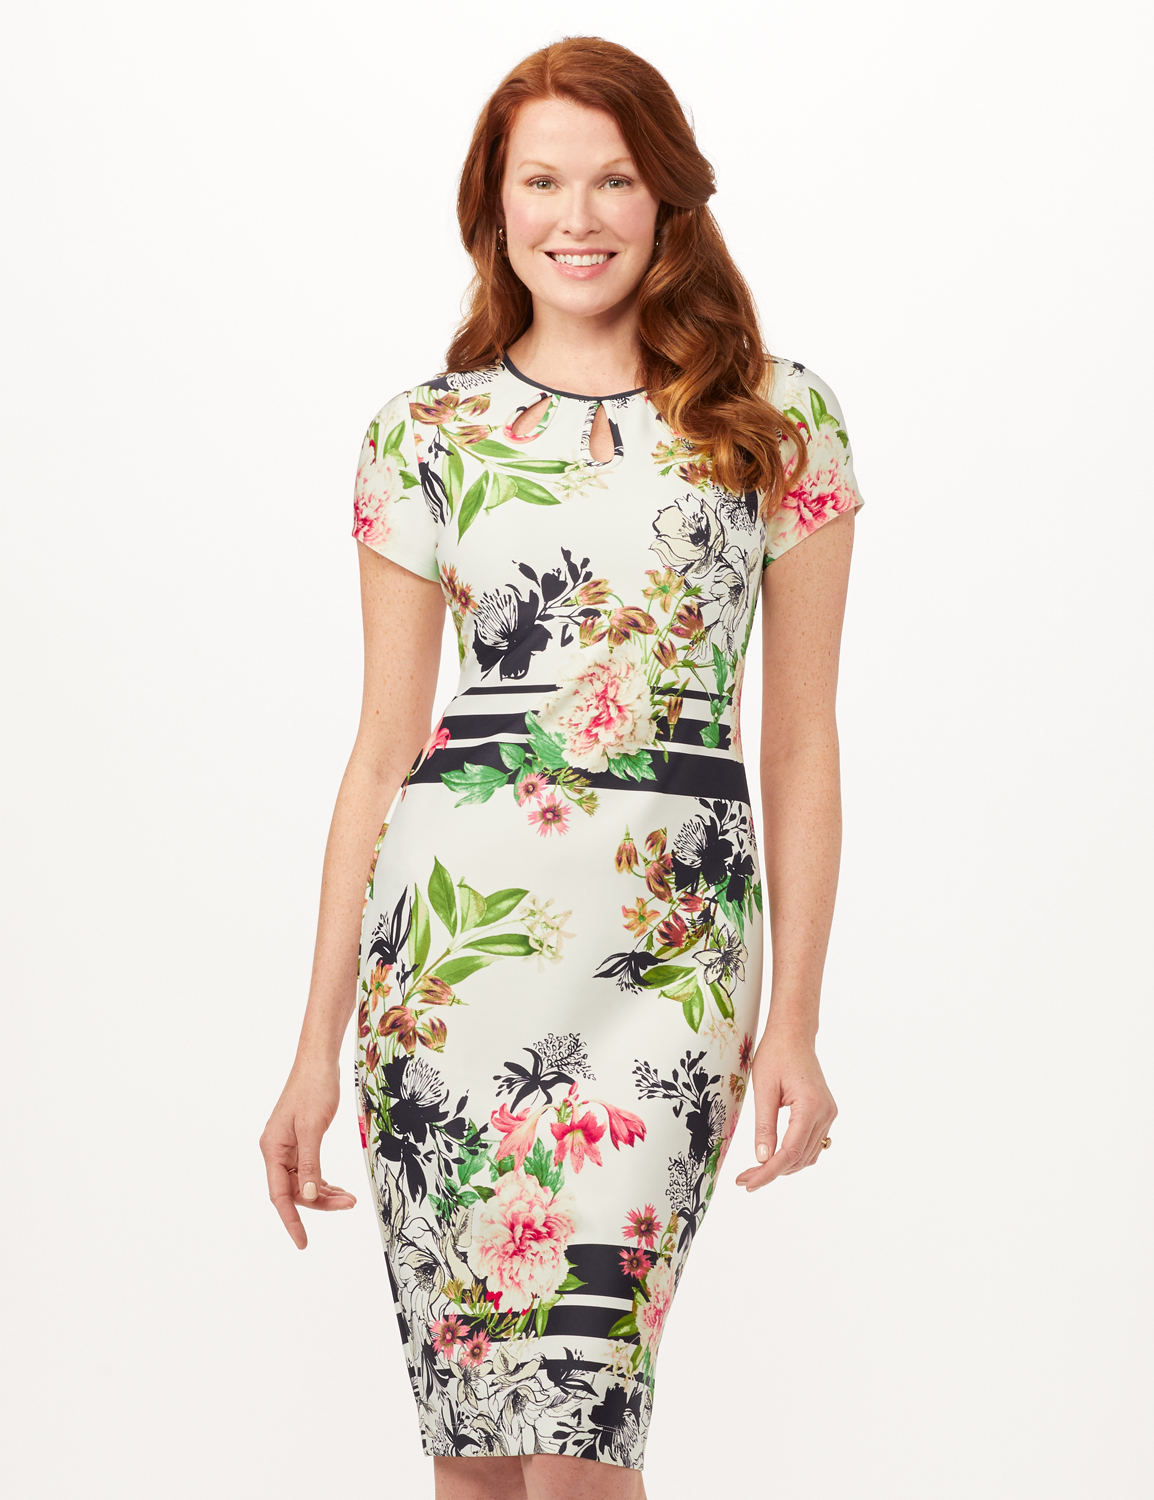 Cutout Neck Floral Scuba Dress -Ivory/Multi/Blk - Front